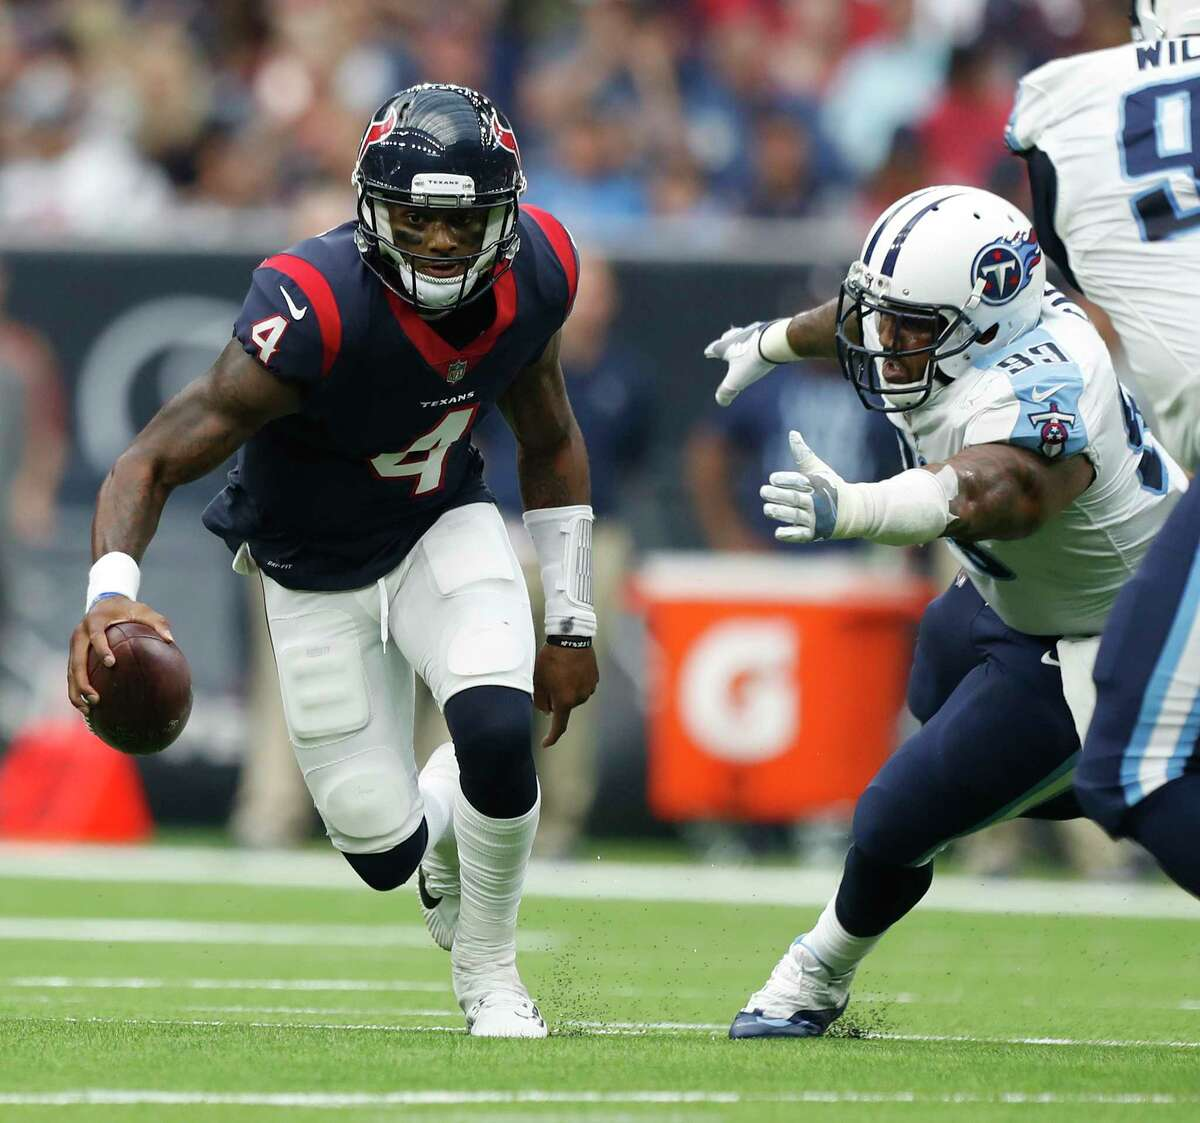 5 STATEMENT GAMES FOR TEXANS IN 2018 2. Tennessee The Titans finished 9-7, earned a wild-card berth and beat Kansas City at Arrowhead Stadium before being eliminated at New England. The Texans split with the Titans, defeating them with Deshaun Watson at quarterback and losing in Nashville. Under new coach Mike Vrabel, the Titans should contend for the division title.